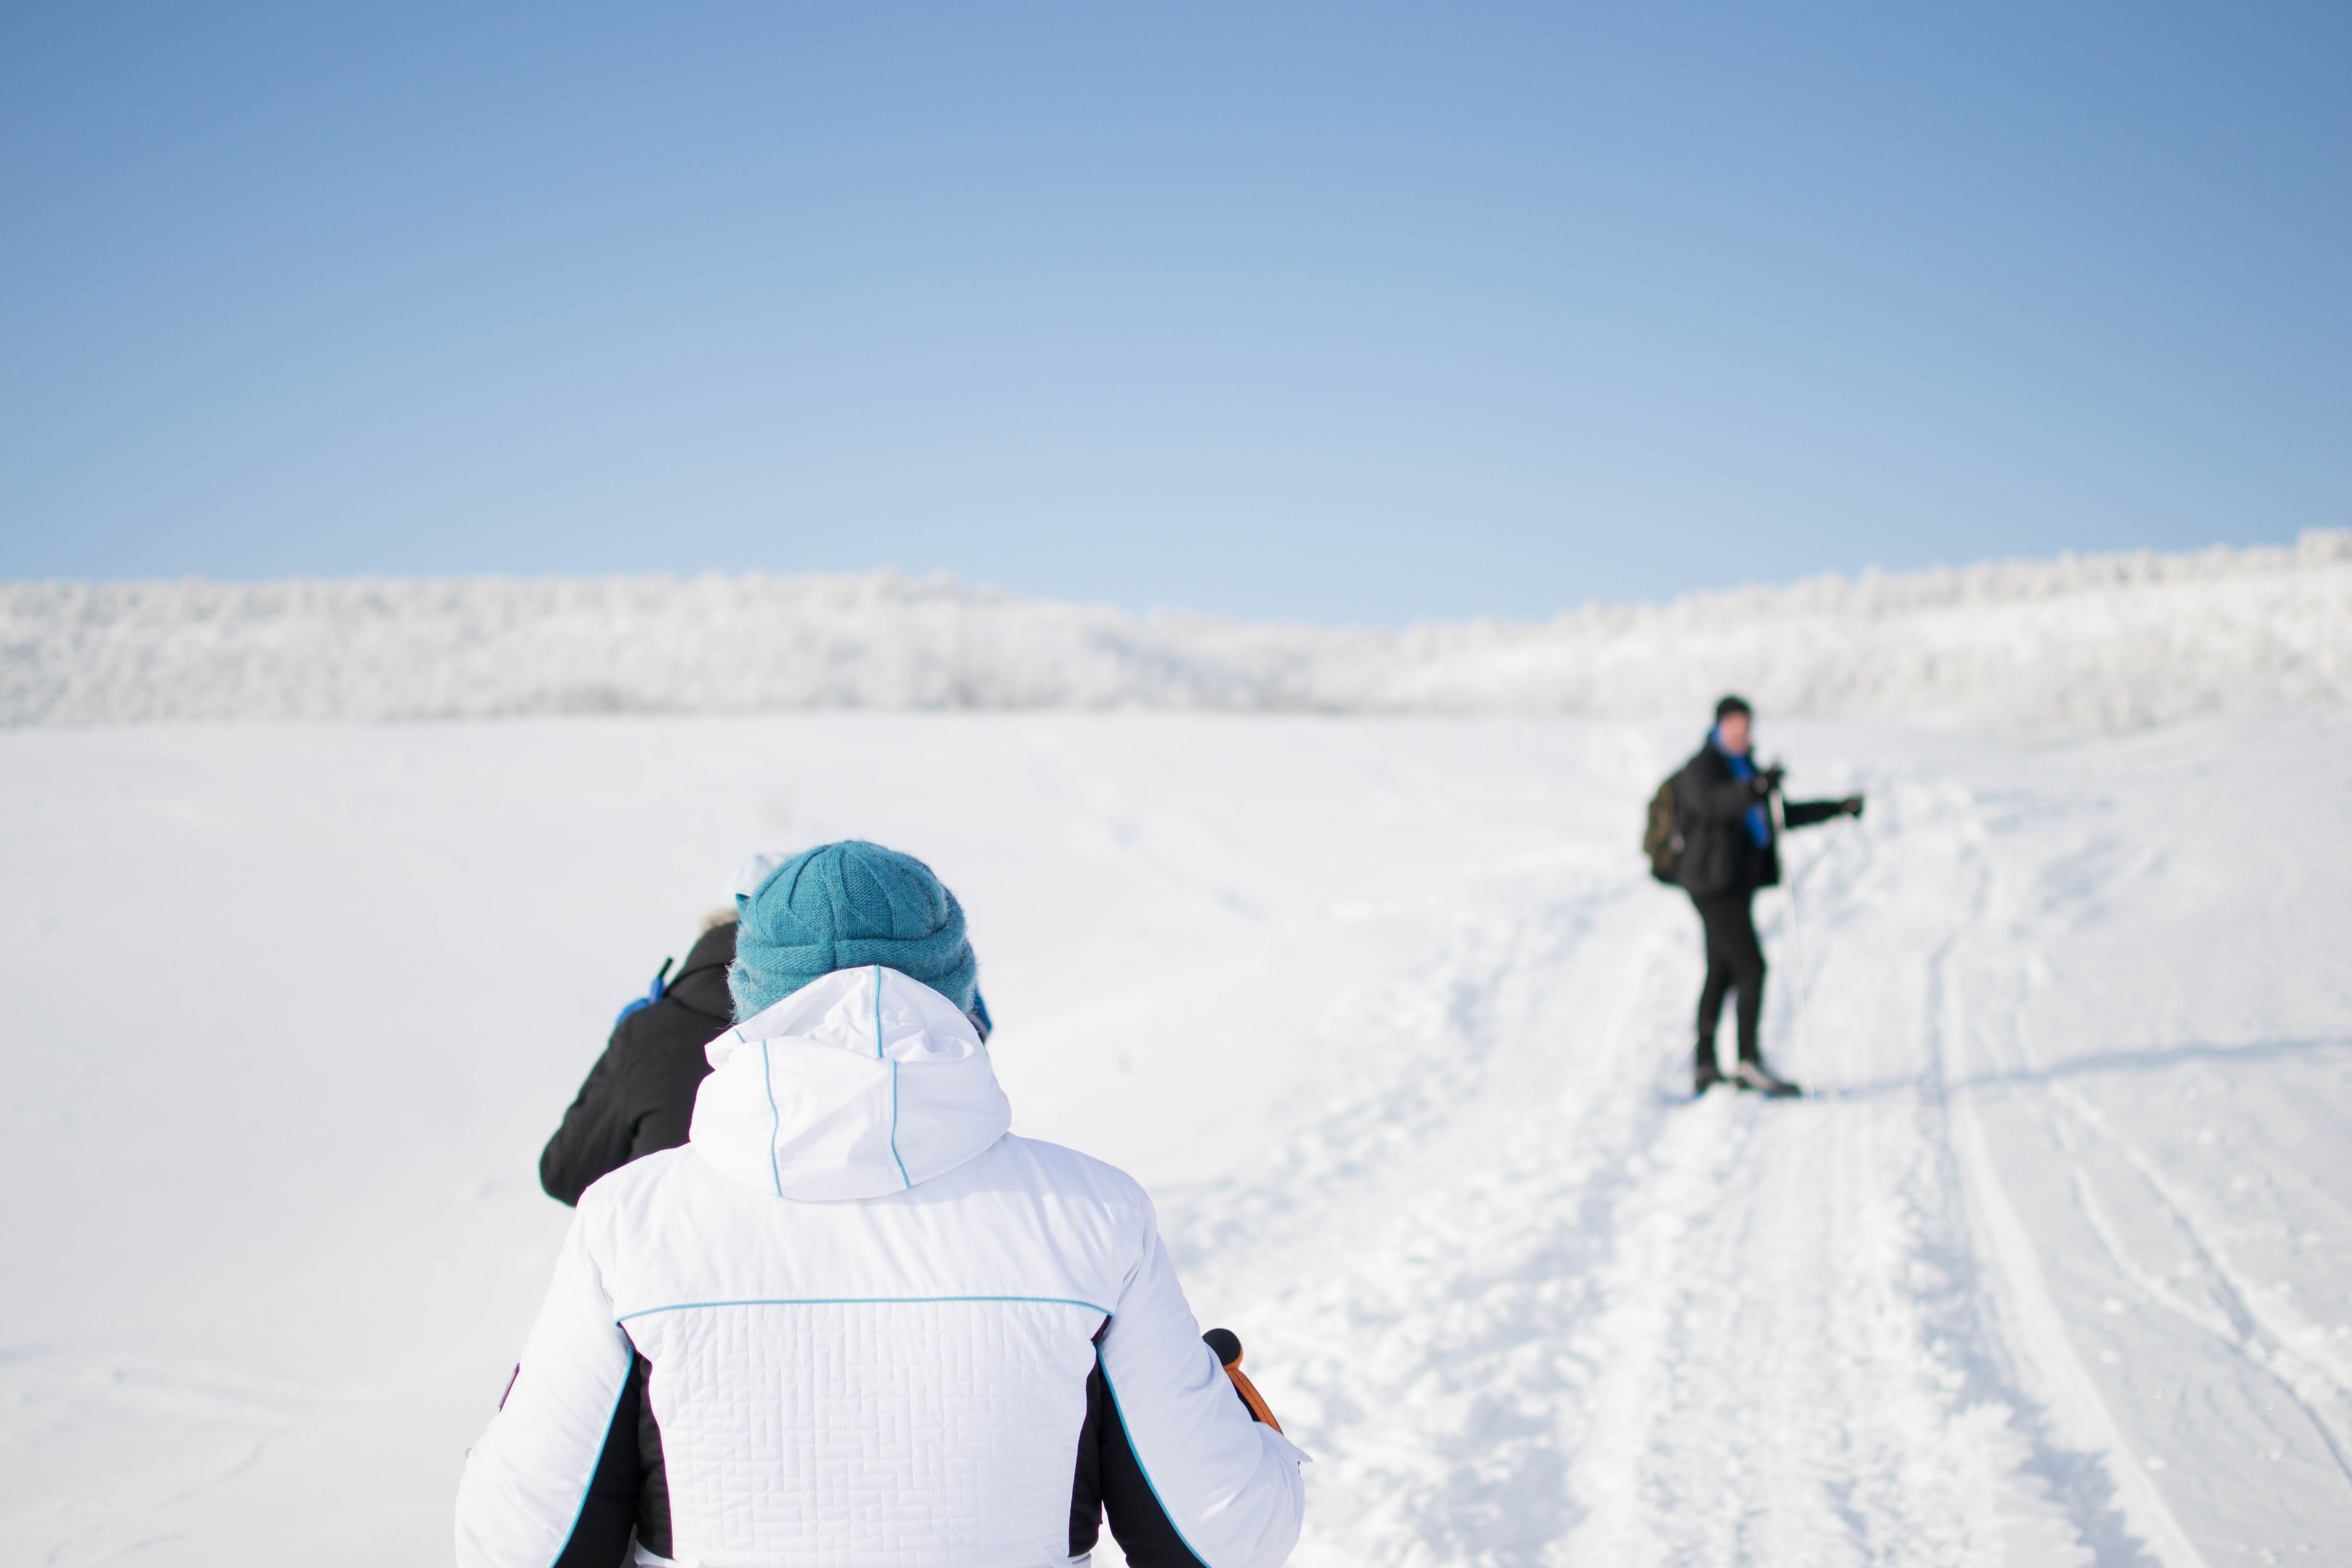 Three people walking through a deserted snowy valley with tire tracks on the ground